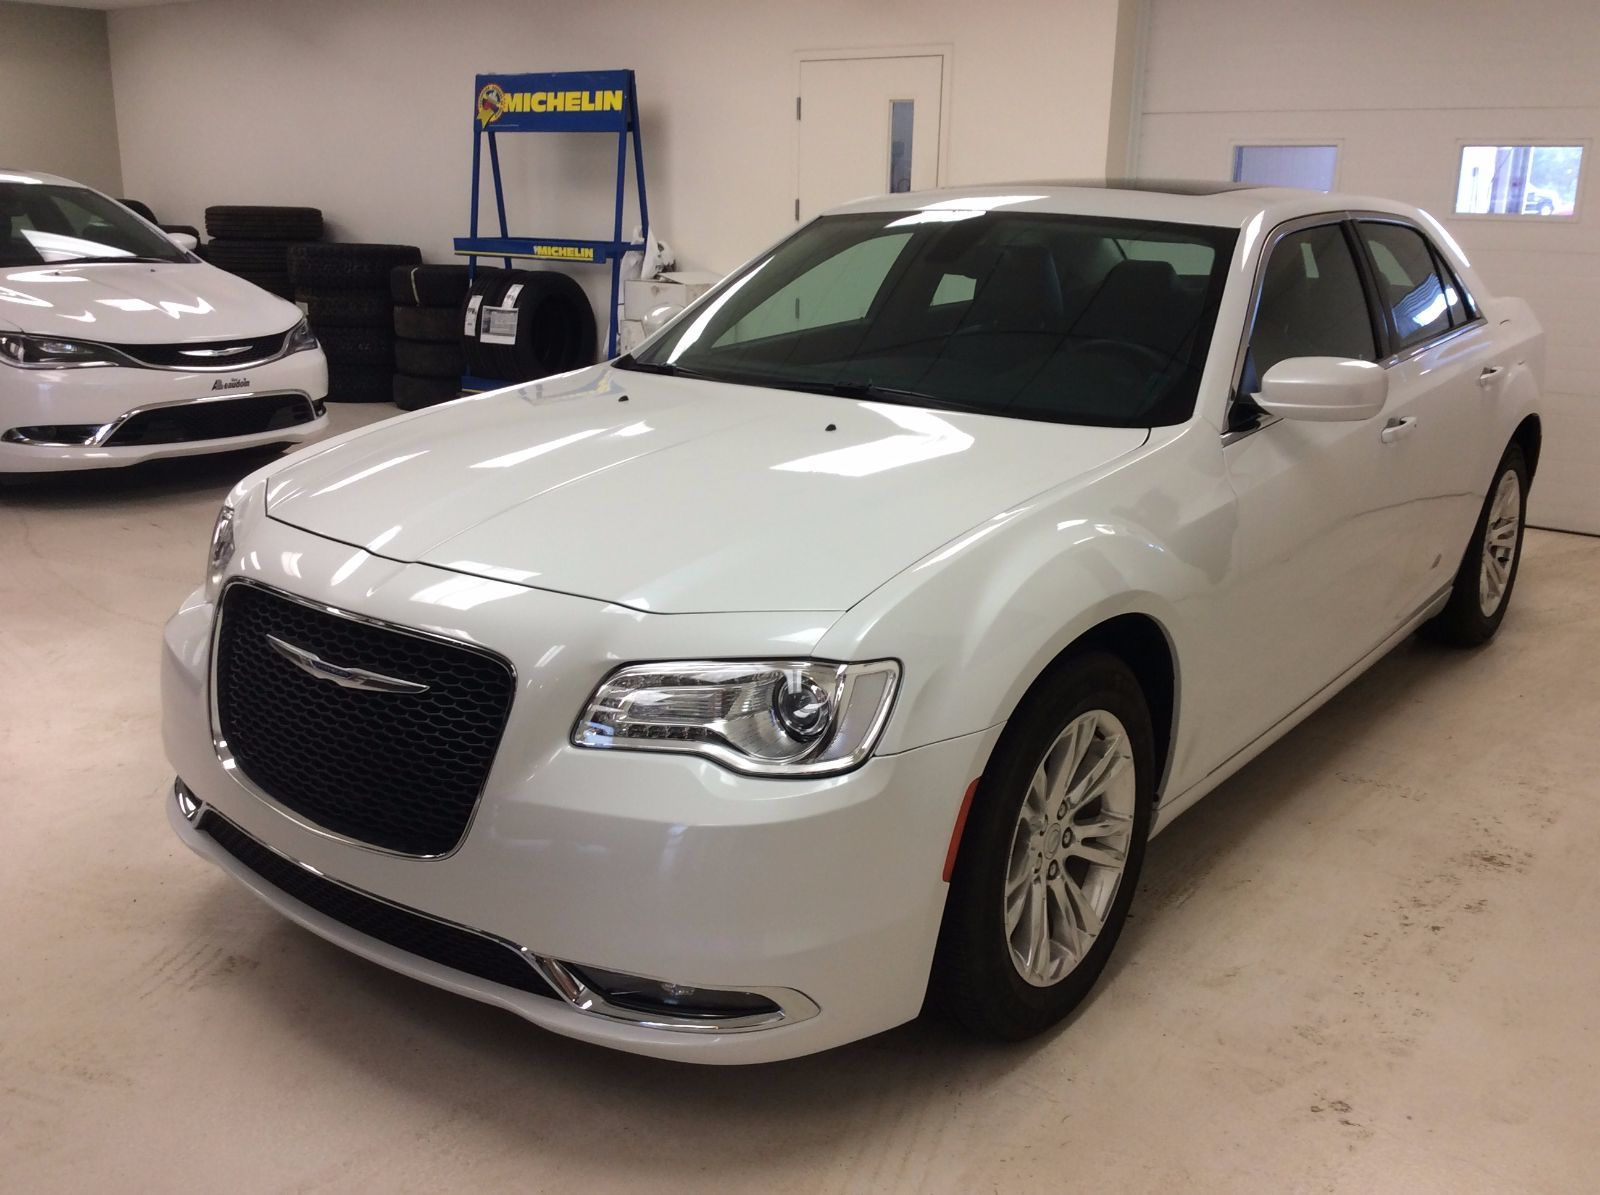 2015 chrysler 300 touring int cuir toit ouvrant gps d 39 occasion laurier station inventaire. Black Bedroom Furniture Sets. Home Design Ideas